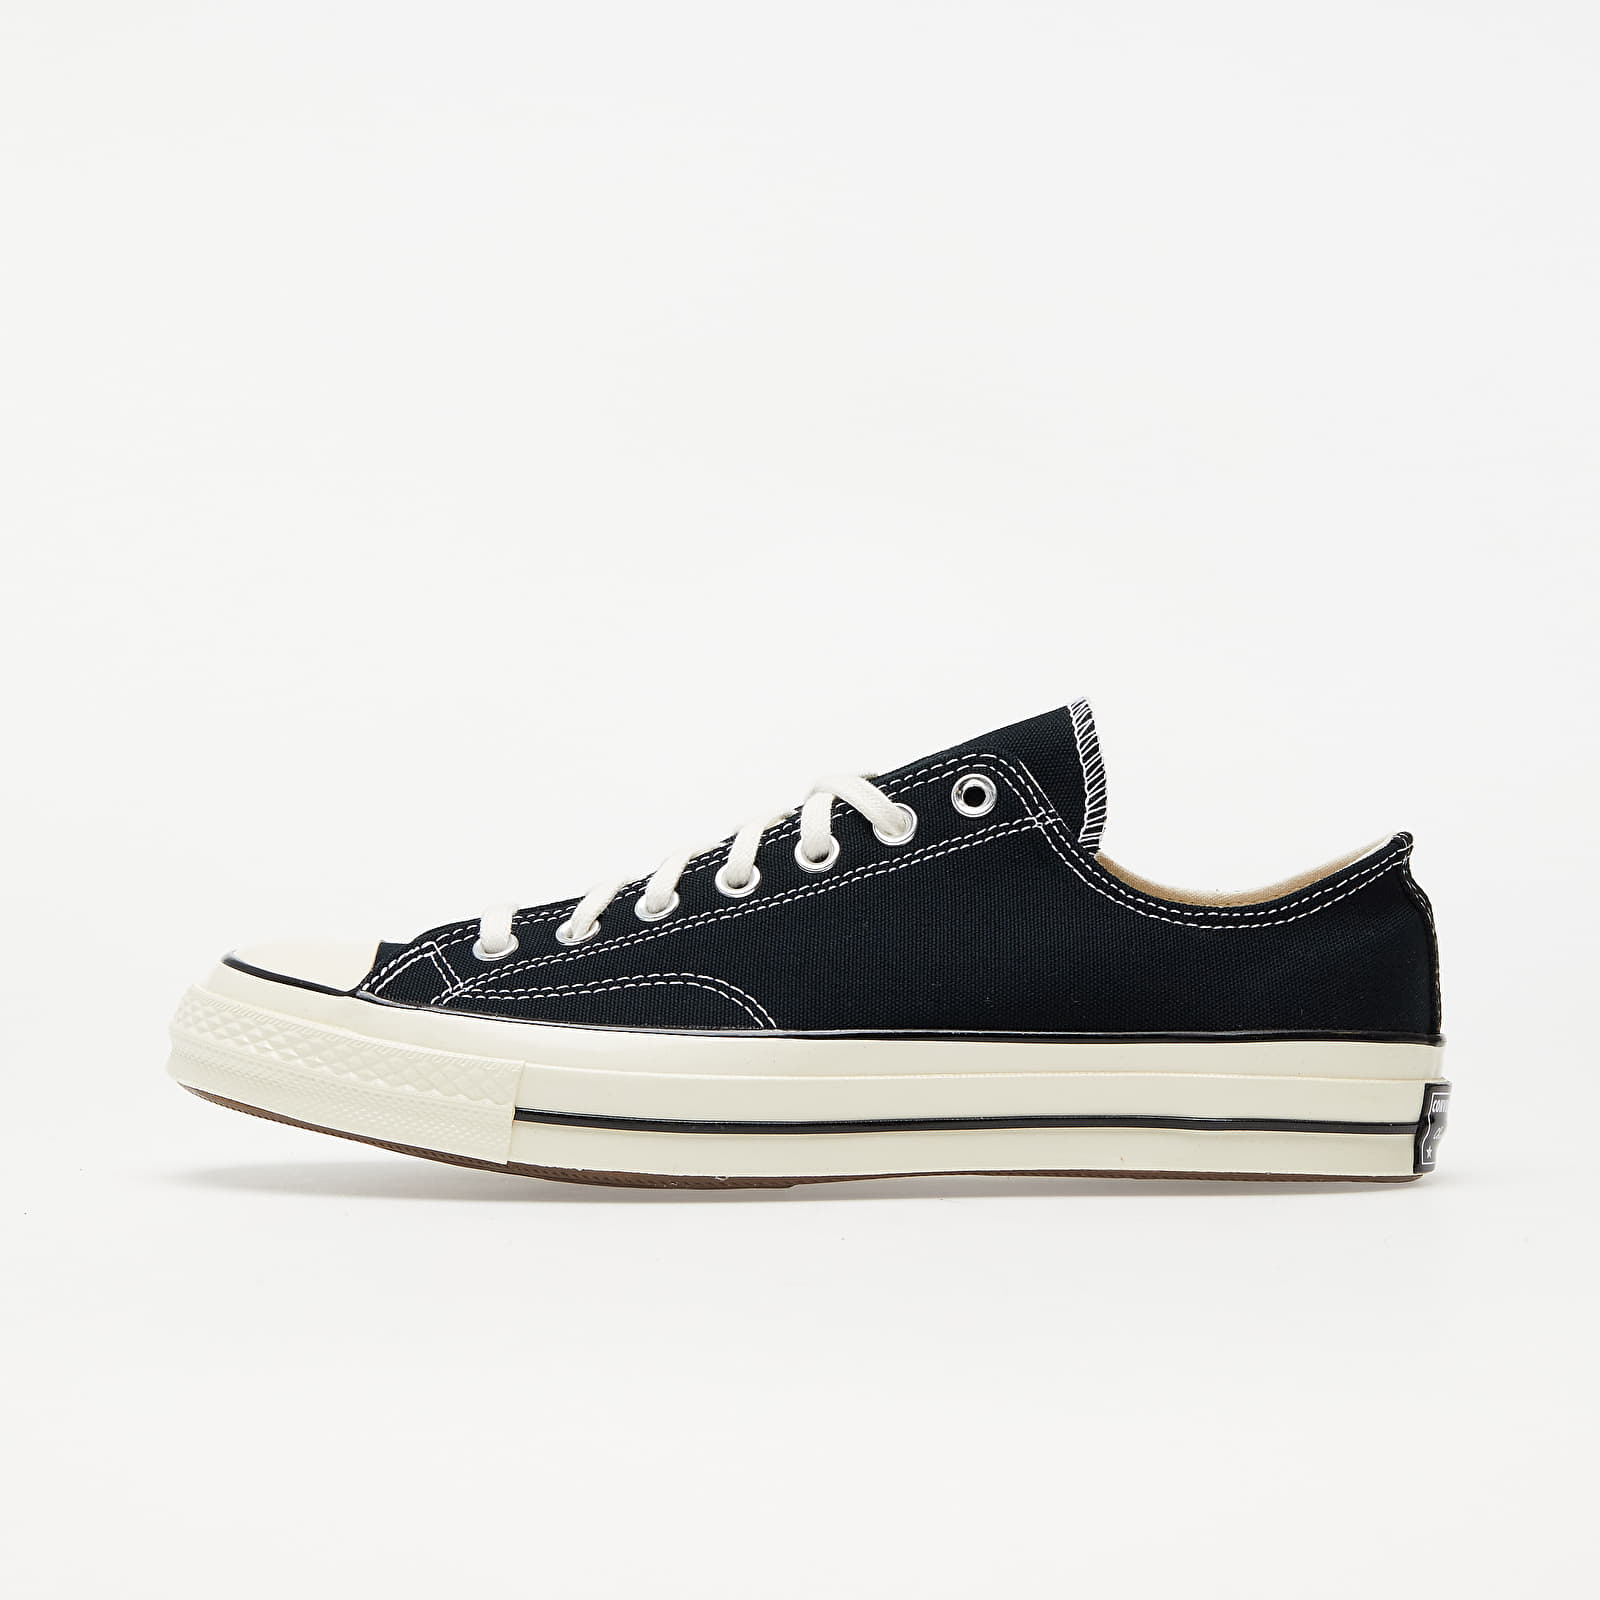 Chaussures et baskets homme Converse Chuck Taylor All Star 70 OX Black/ Black/ Egret